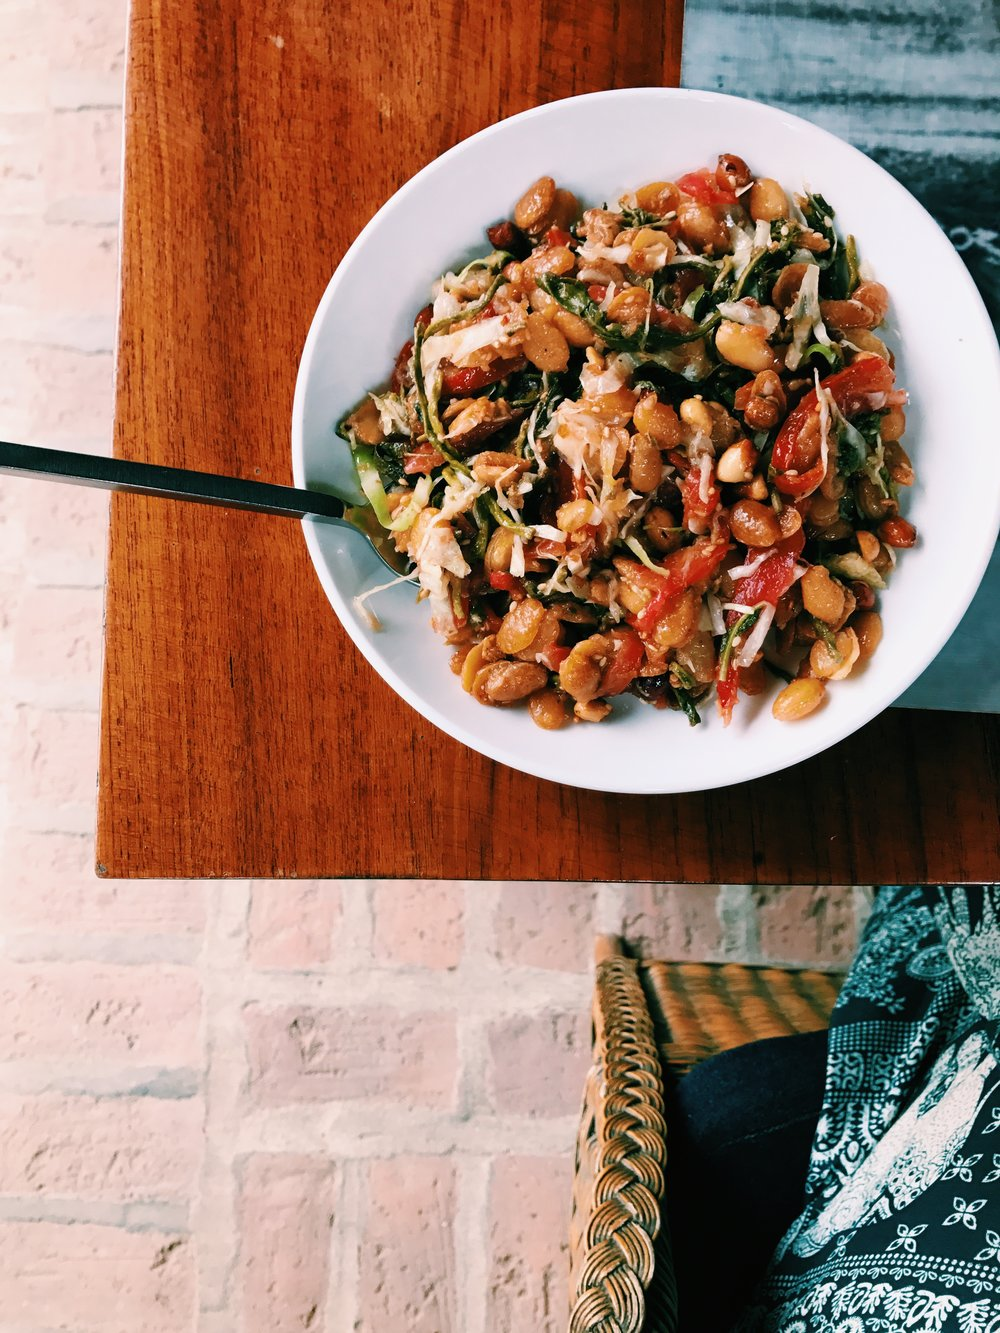 Tea leaf salad.  Fried beans, tomato, chickpea flour, cured tea leaf, cabbage.  Crunchy and delicious.